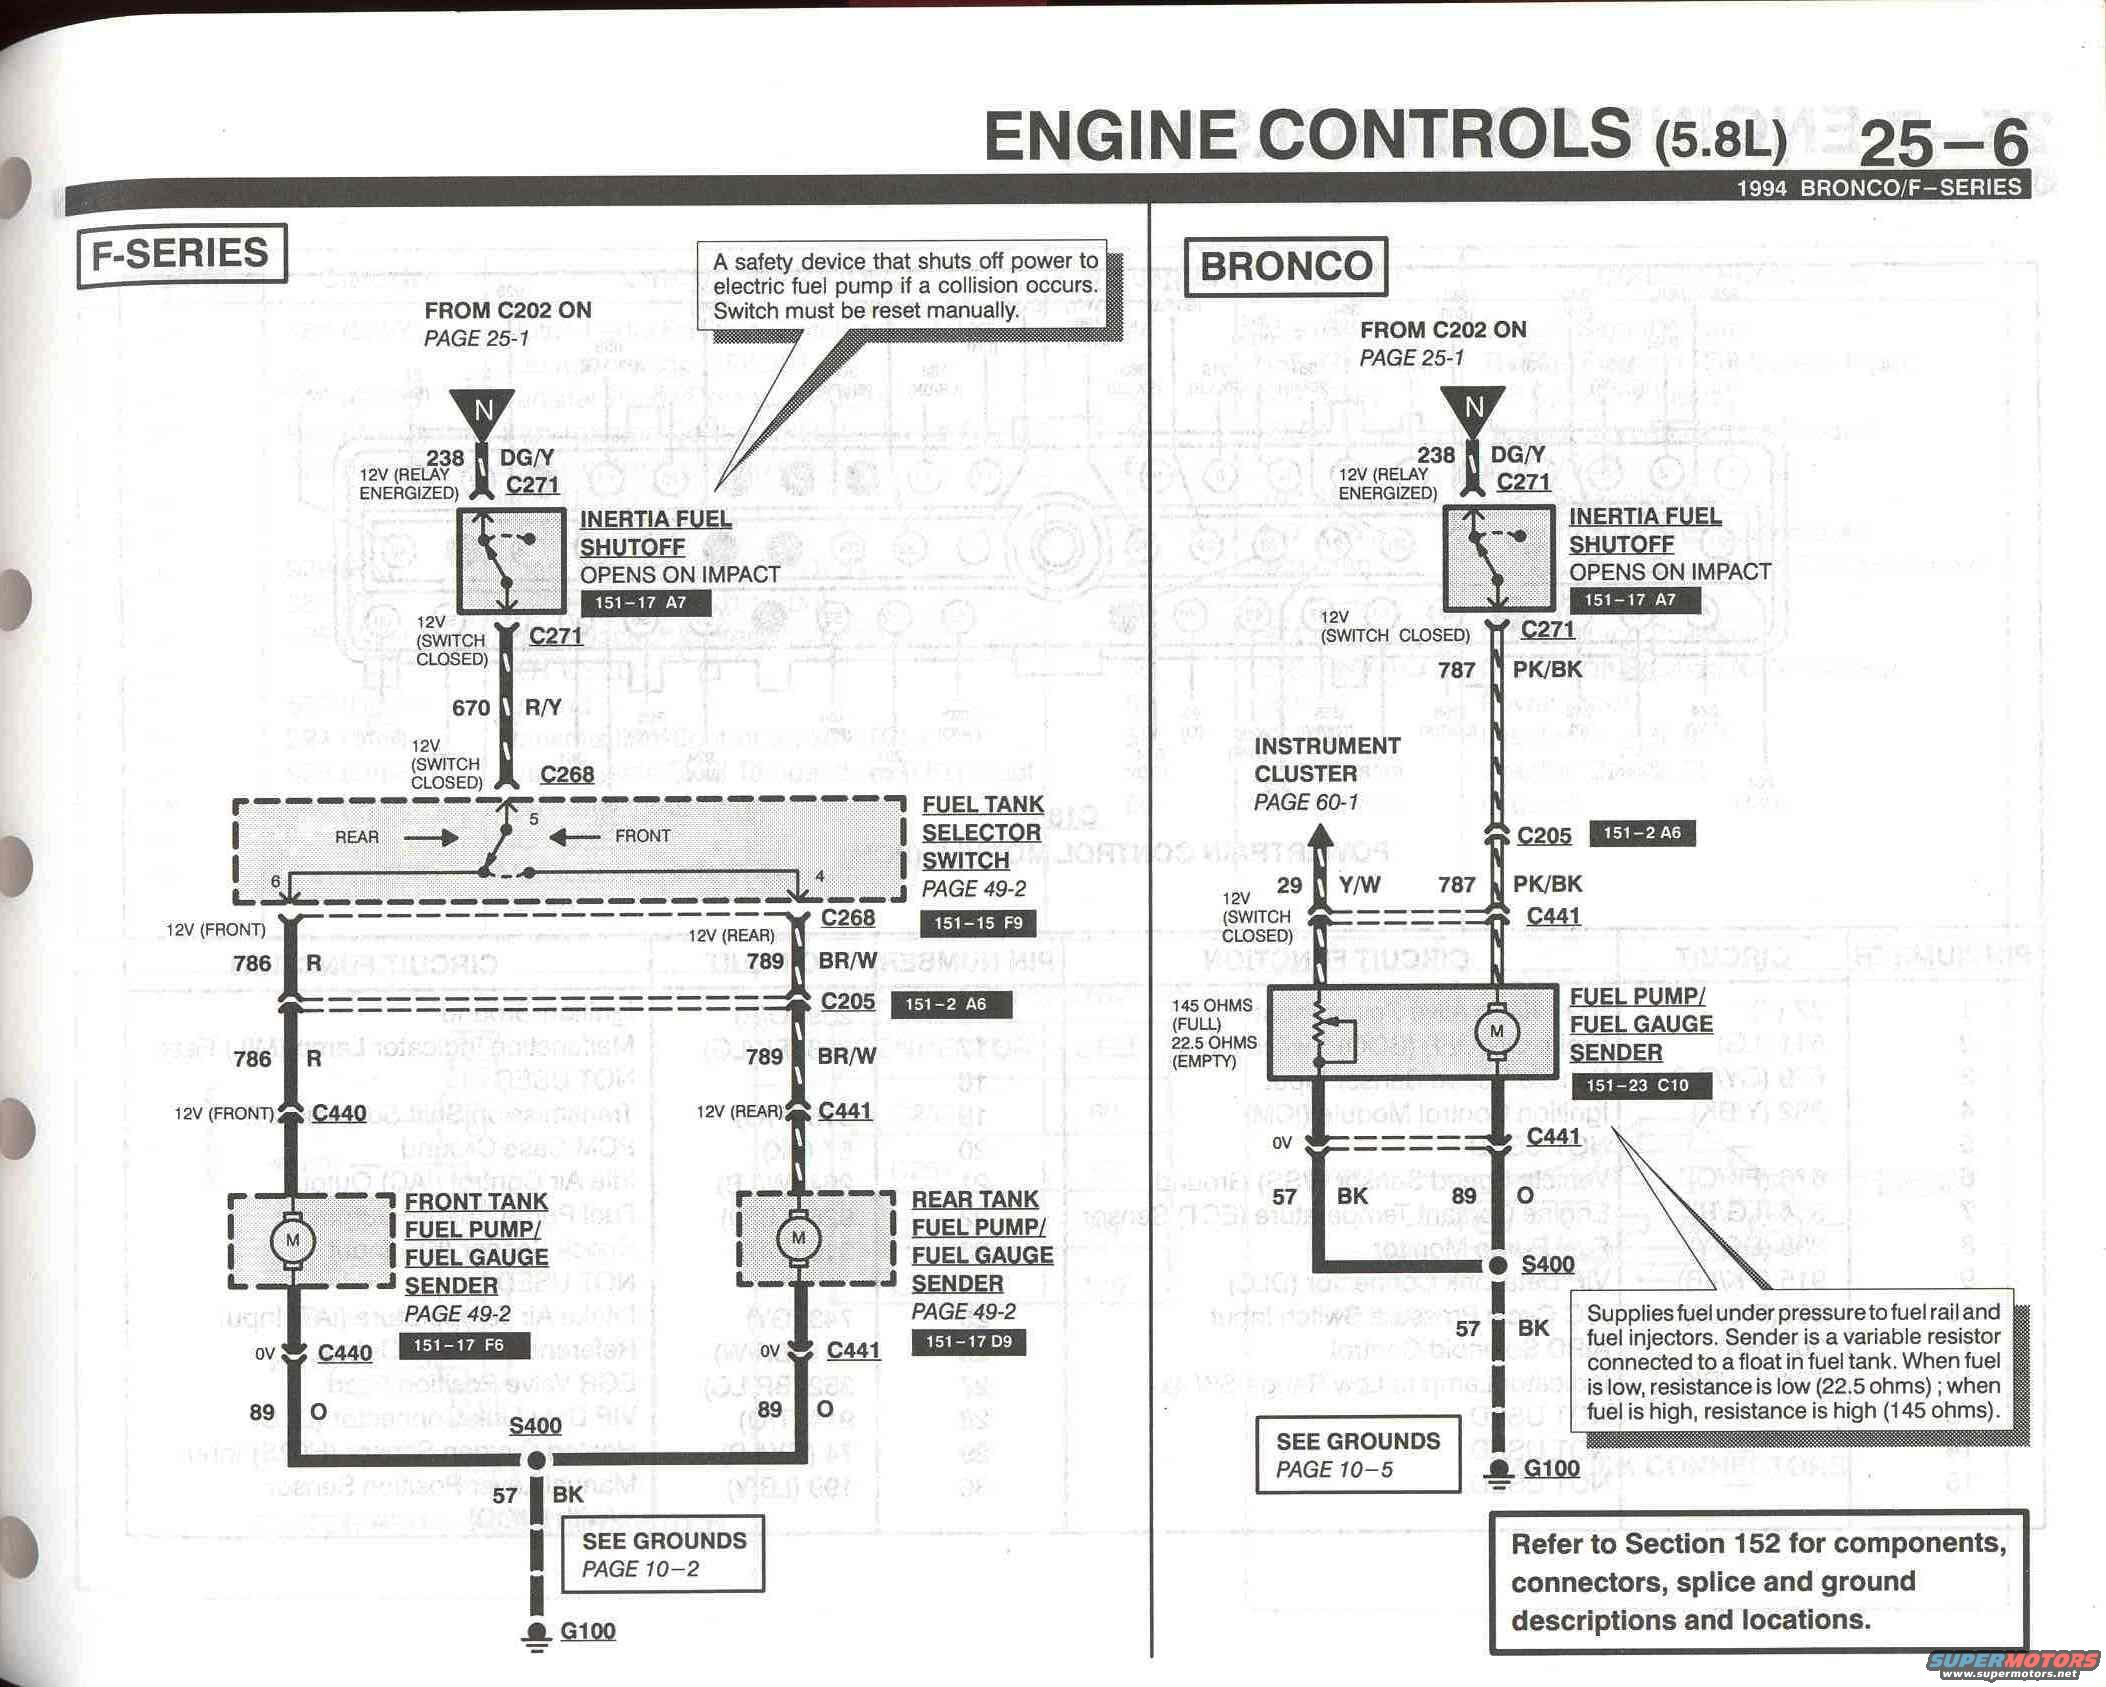 1993 ford ranger fuel pump wiring diagram pioneer deh 11e 94 shift motor get free image